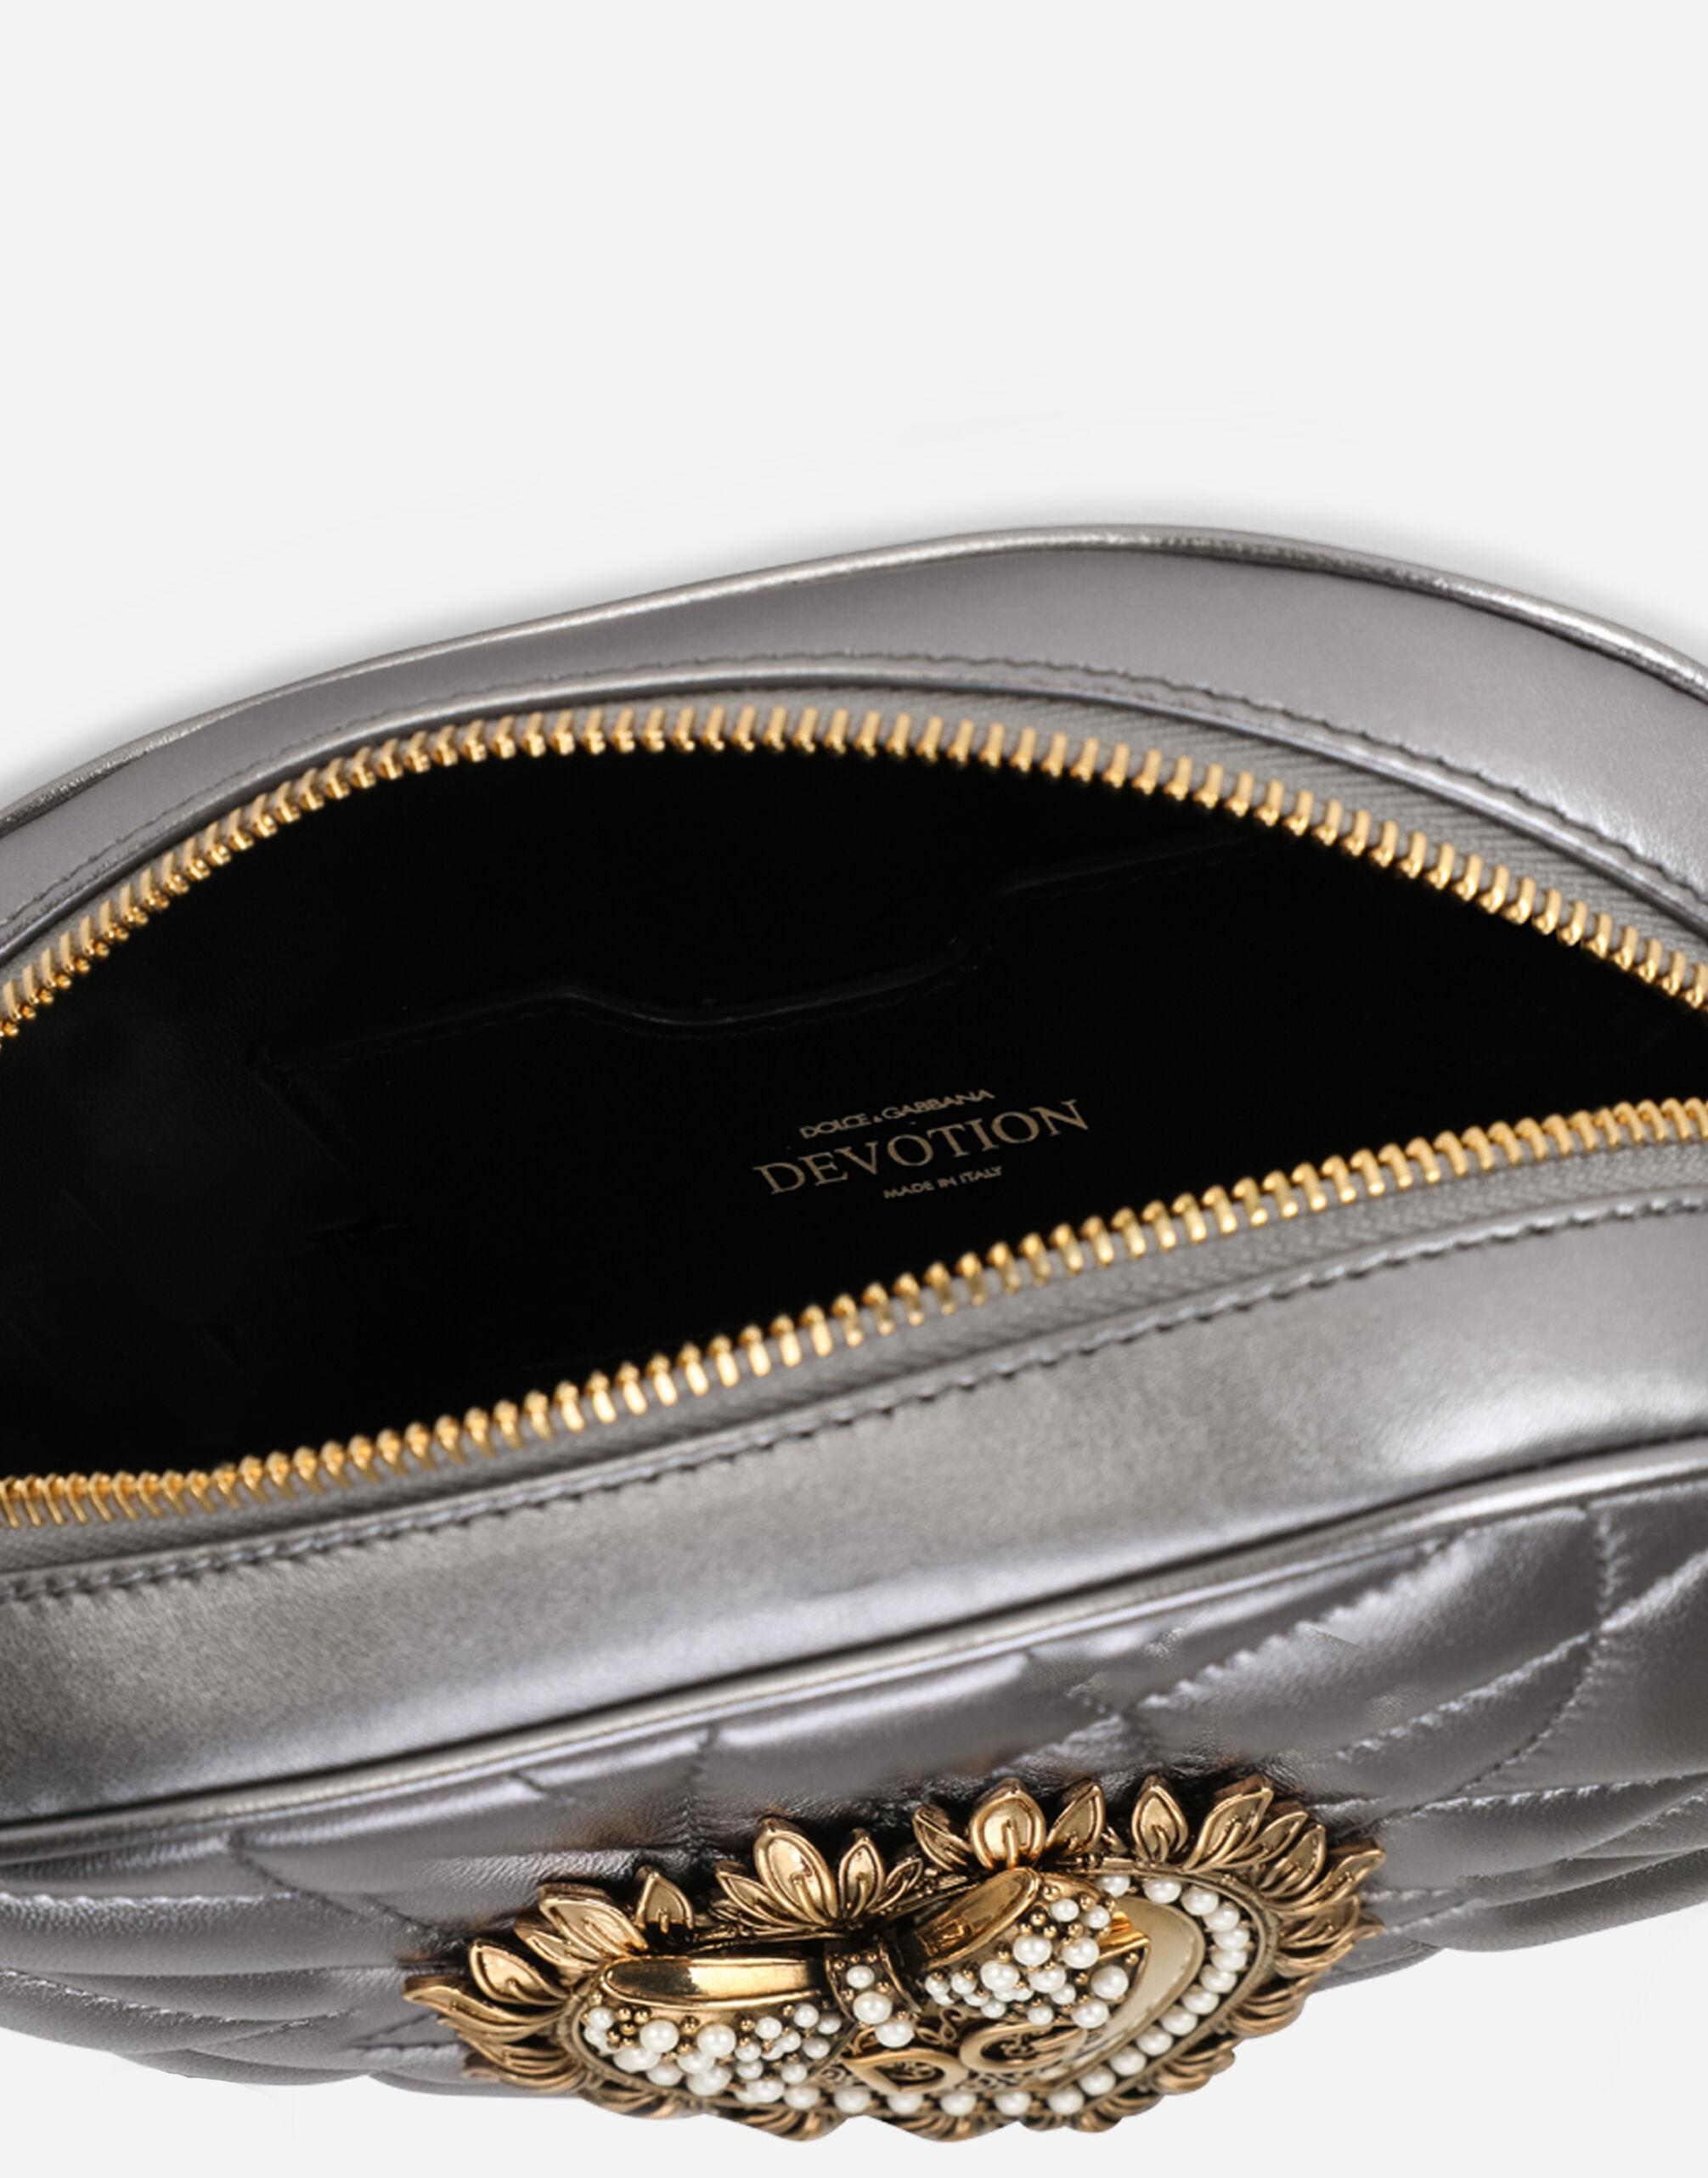 Devotion camera bag in quilted nappa leather 3